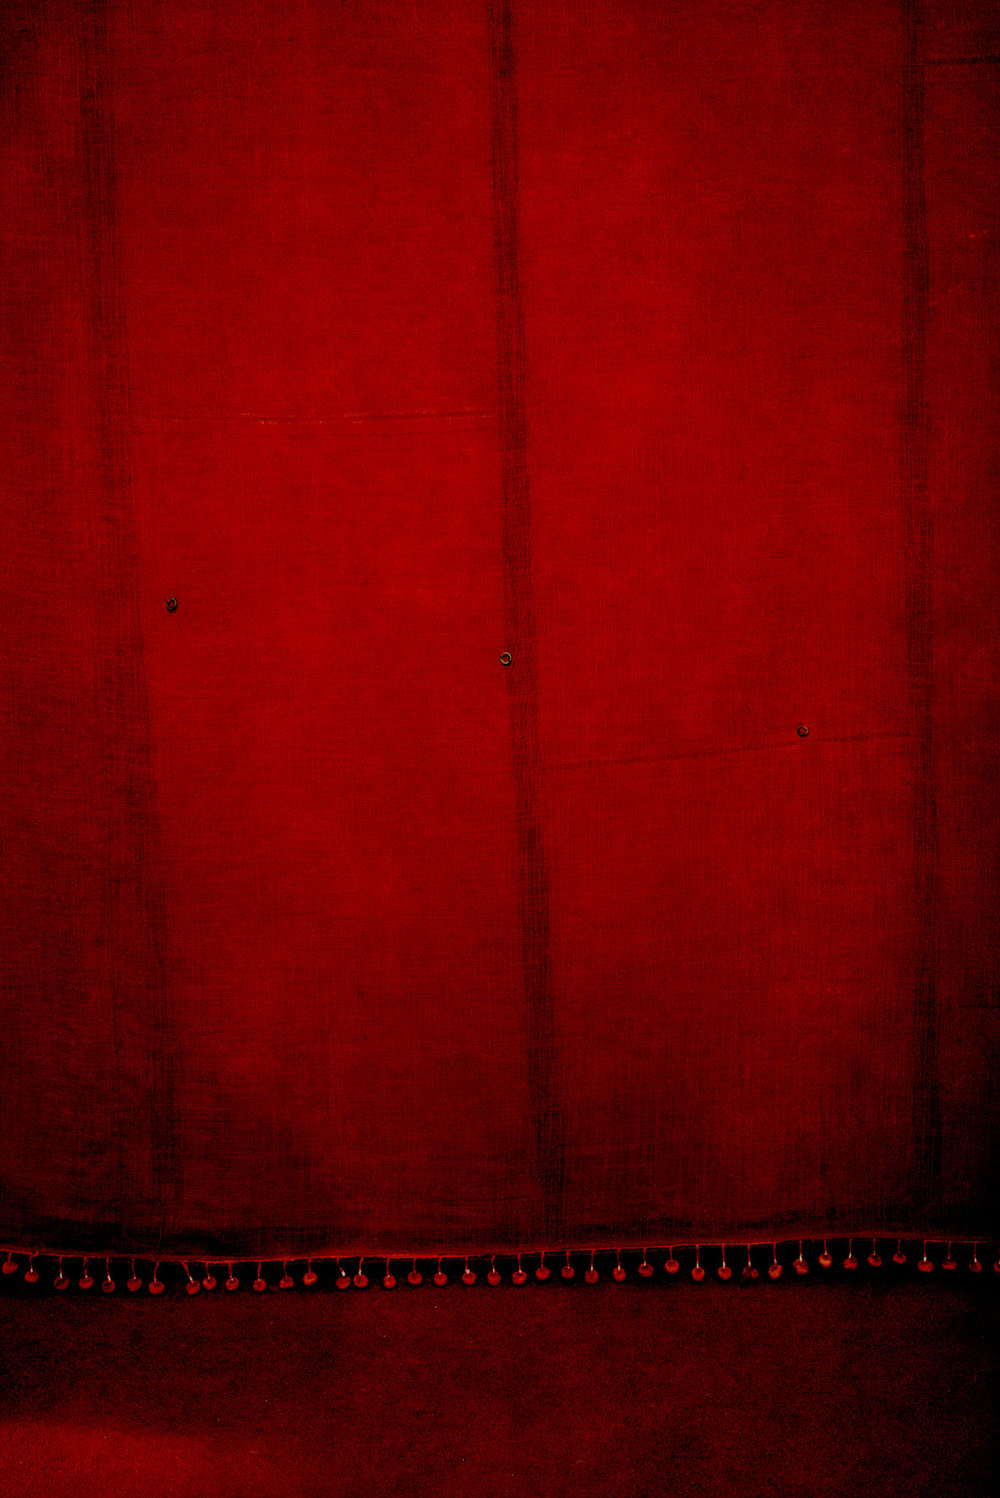 RedCurtain-step3.jpg